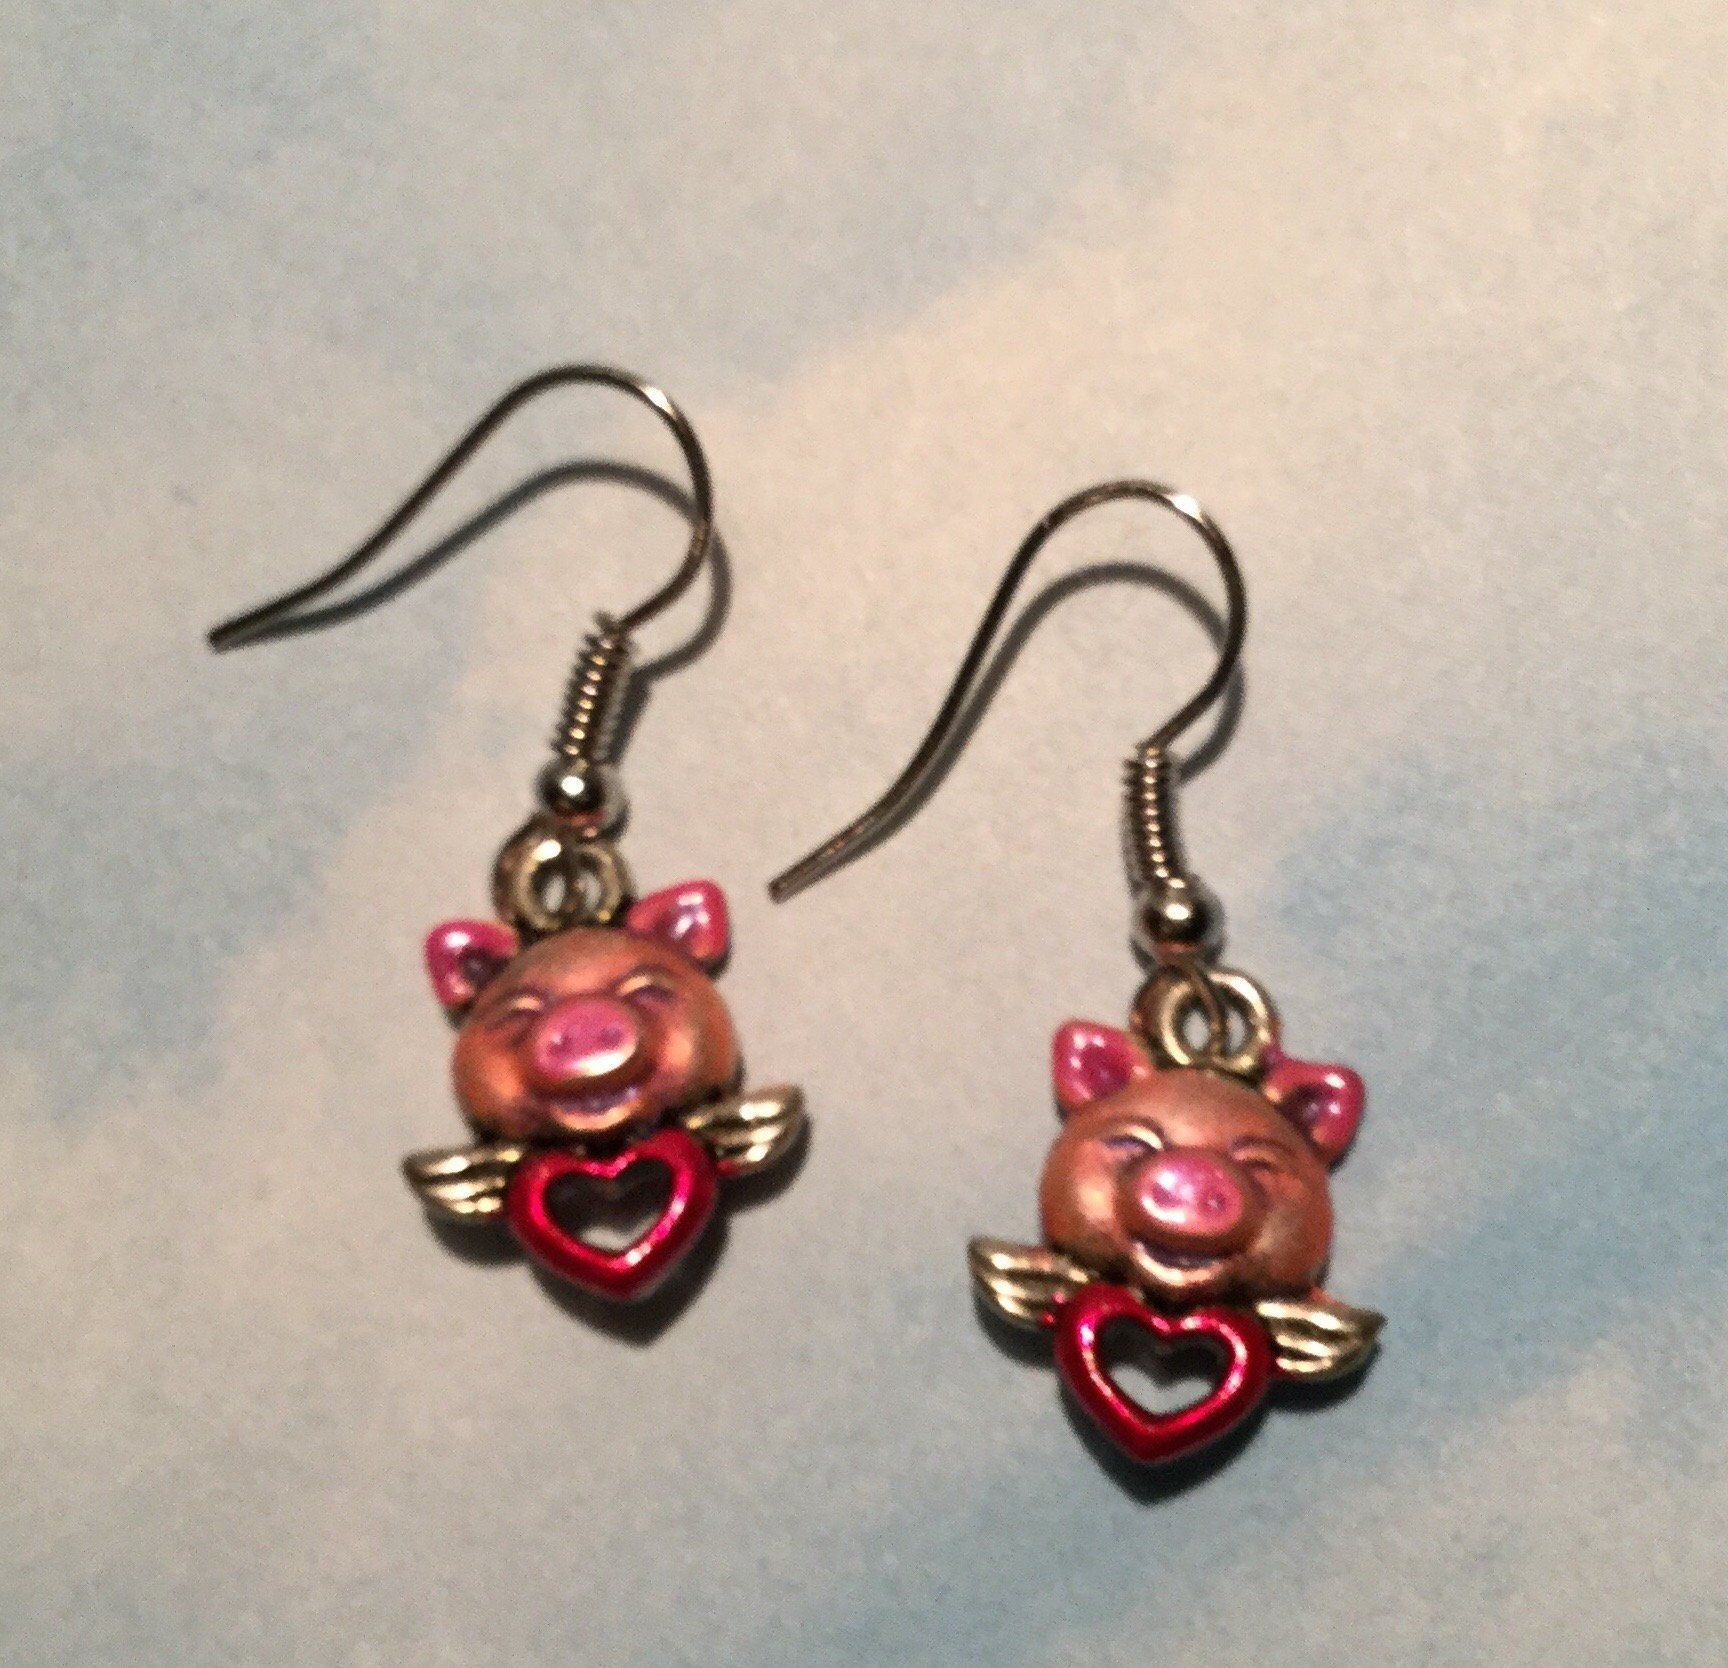 Piglet Earrings Flying Pig Heart Hog Swine Piggy Lucky By Artisticearsbypeggy On Etsy